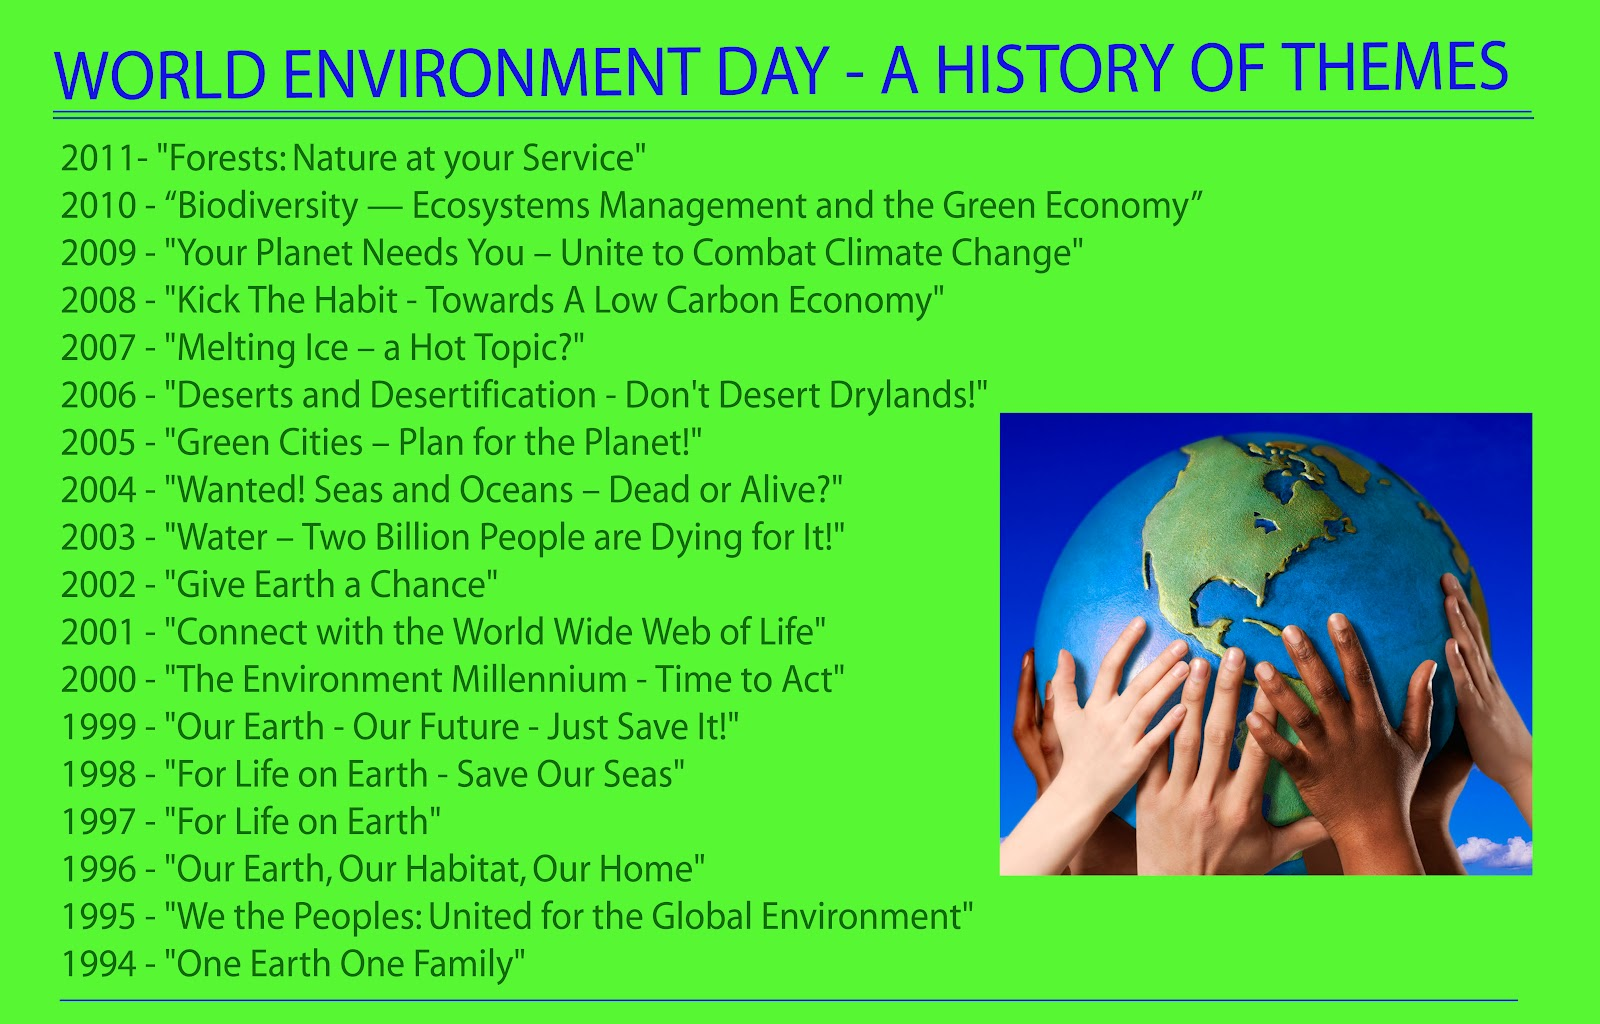 Essay on world environment day theme